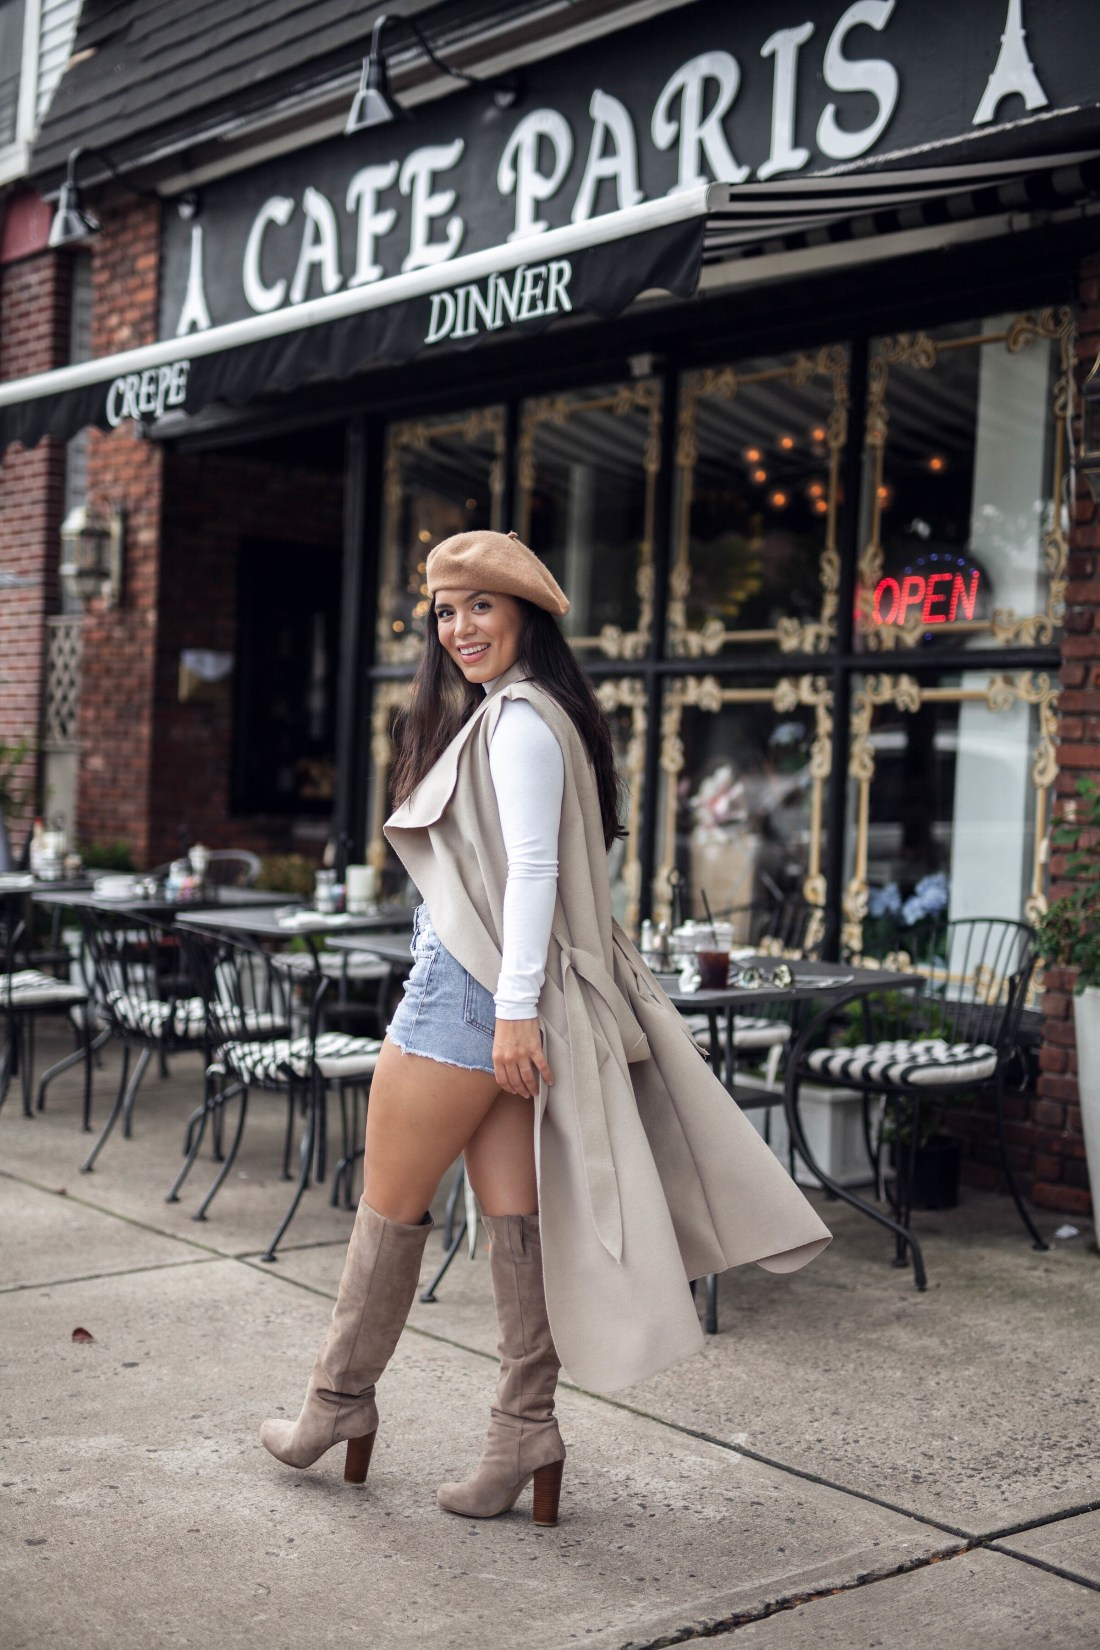 How to do a street style photoshoot at a coffee shop.